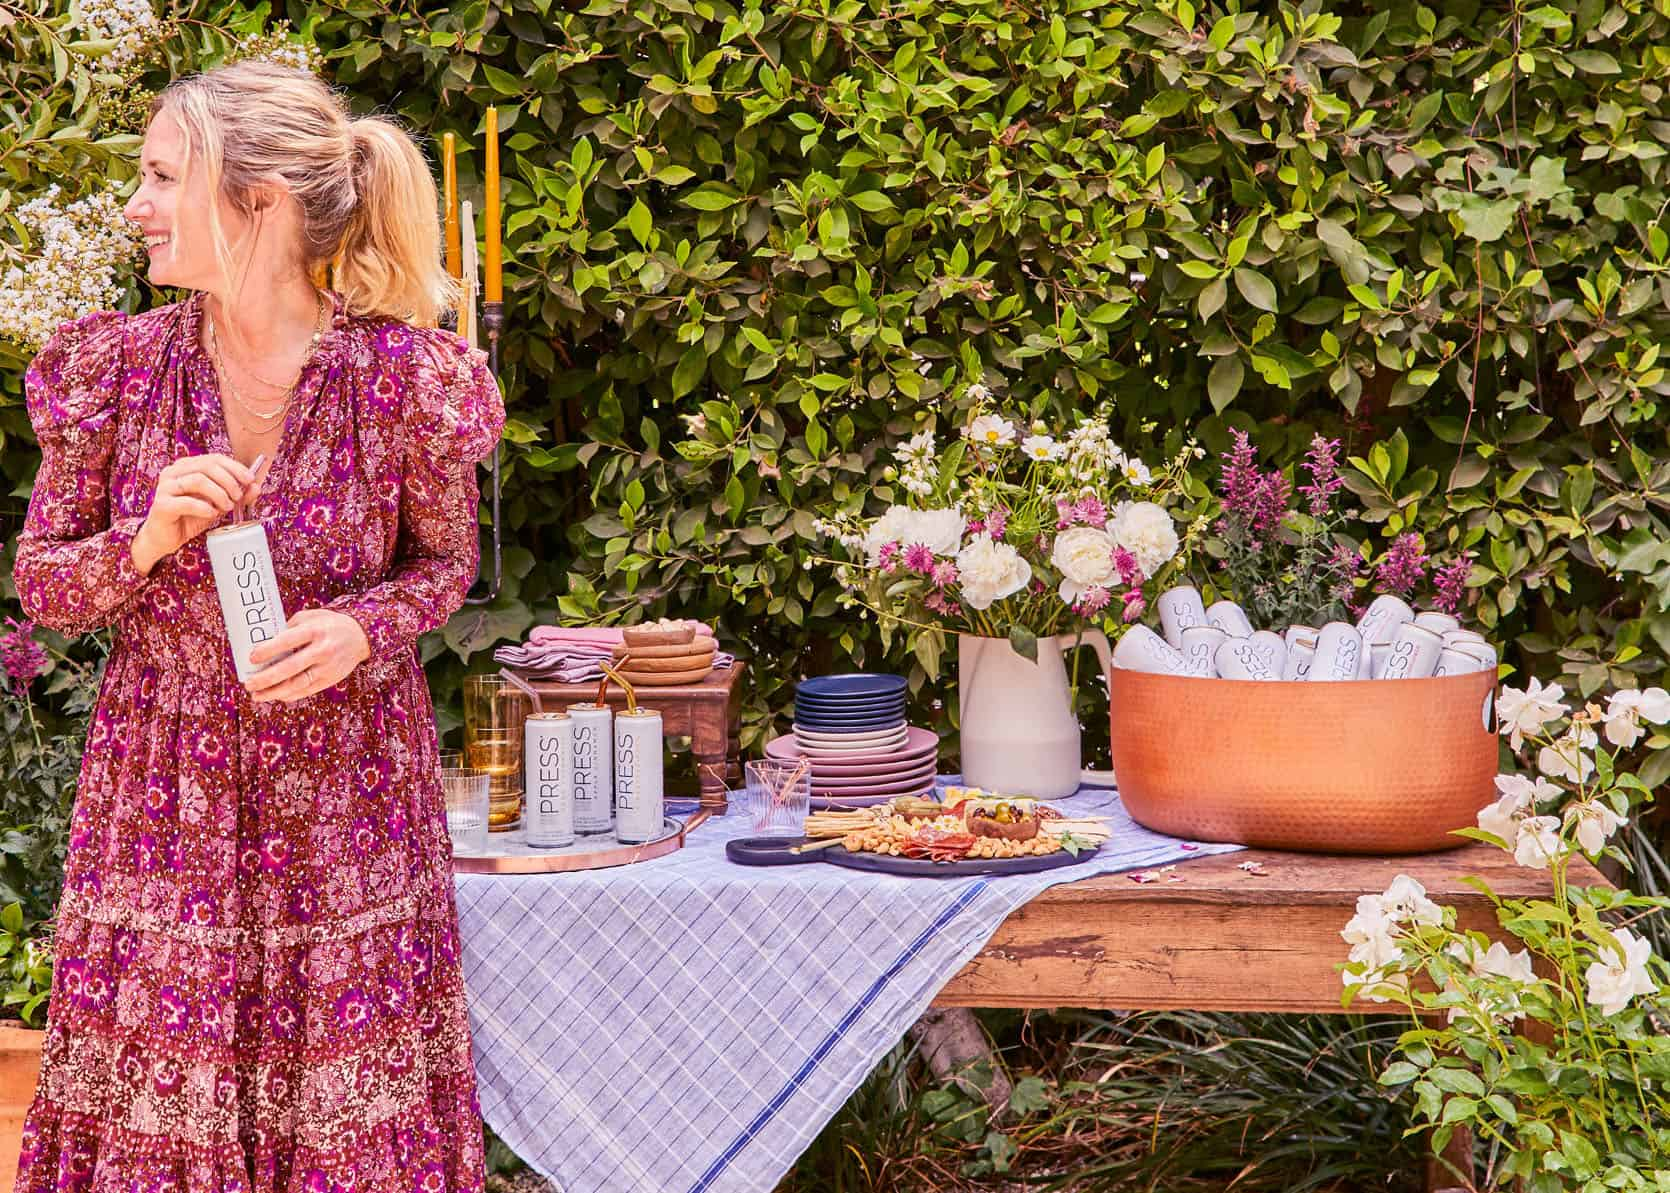 How To Throw An Elevated Garden Party with PRESS Premium Seltzer + Sustainable Outdoor Party Styling Tips